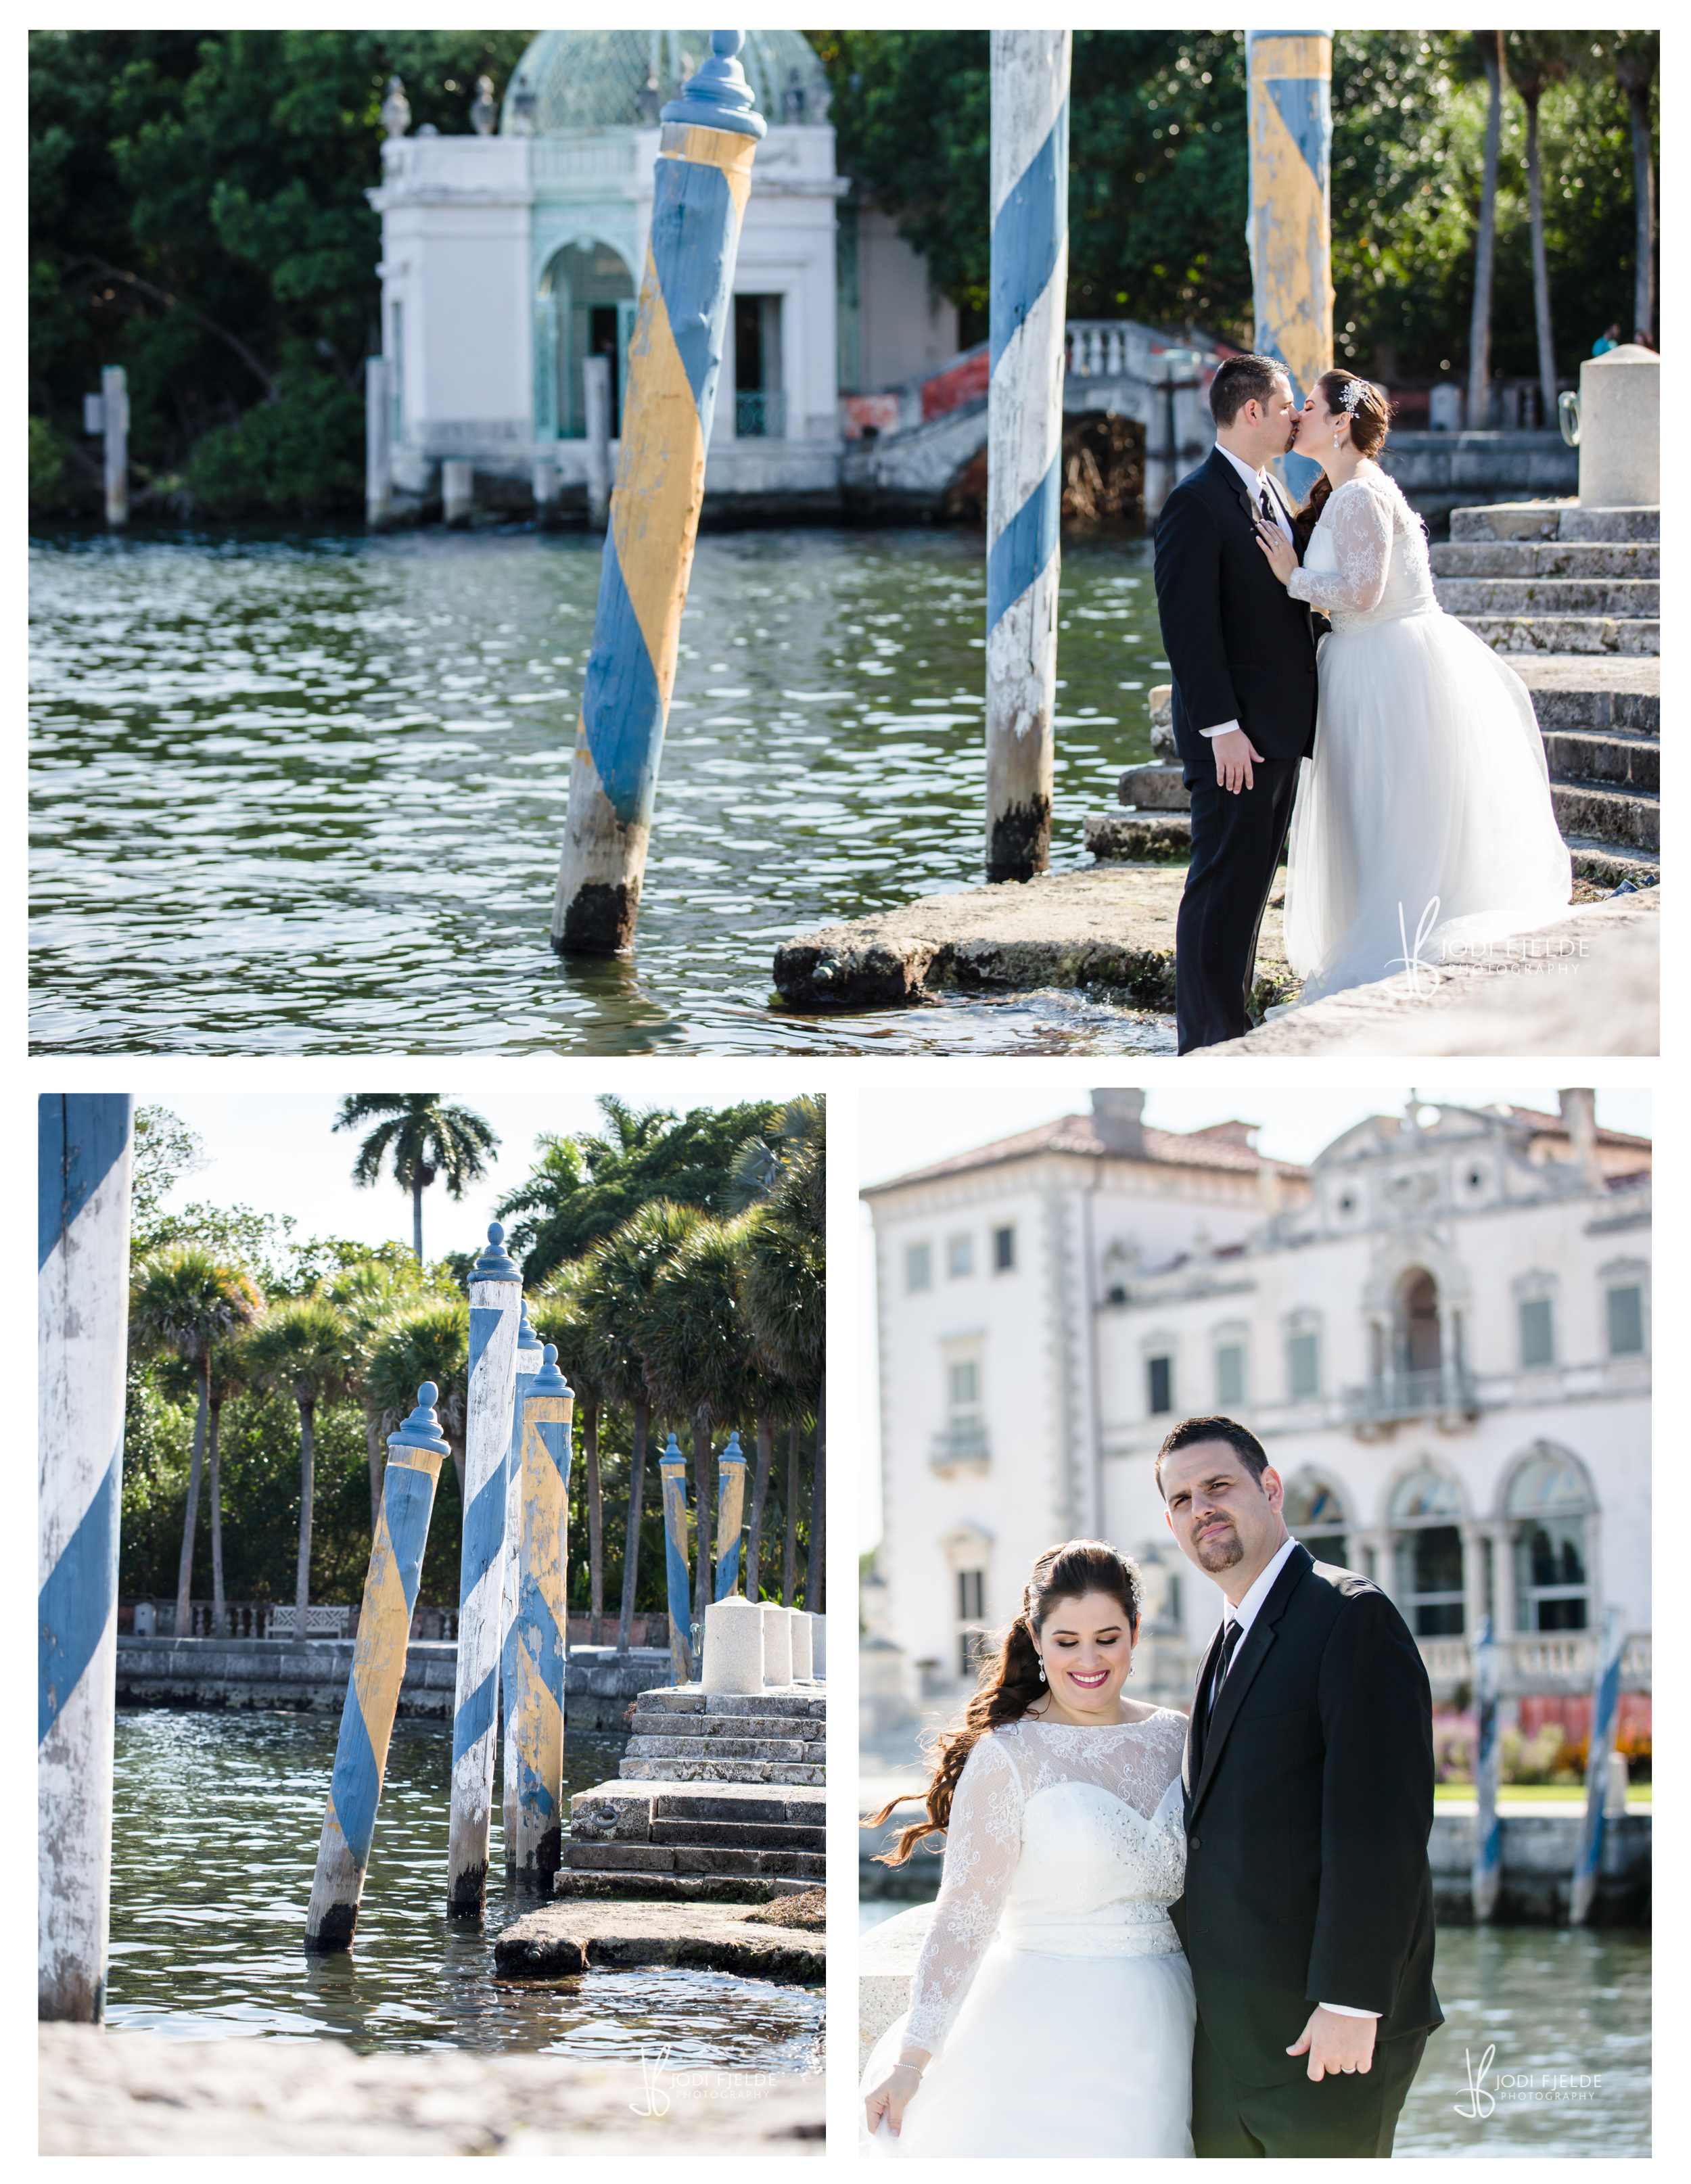 Vizcaya_Miami_Florida_Bridal_Wedding_Portraits_Jodi_Fjelde_Photography-9.jpg